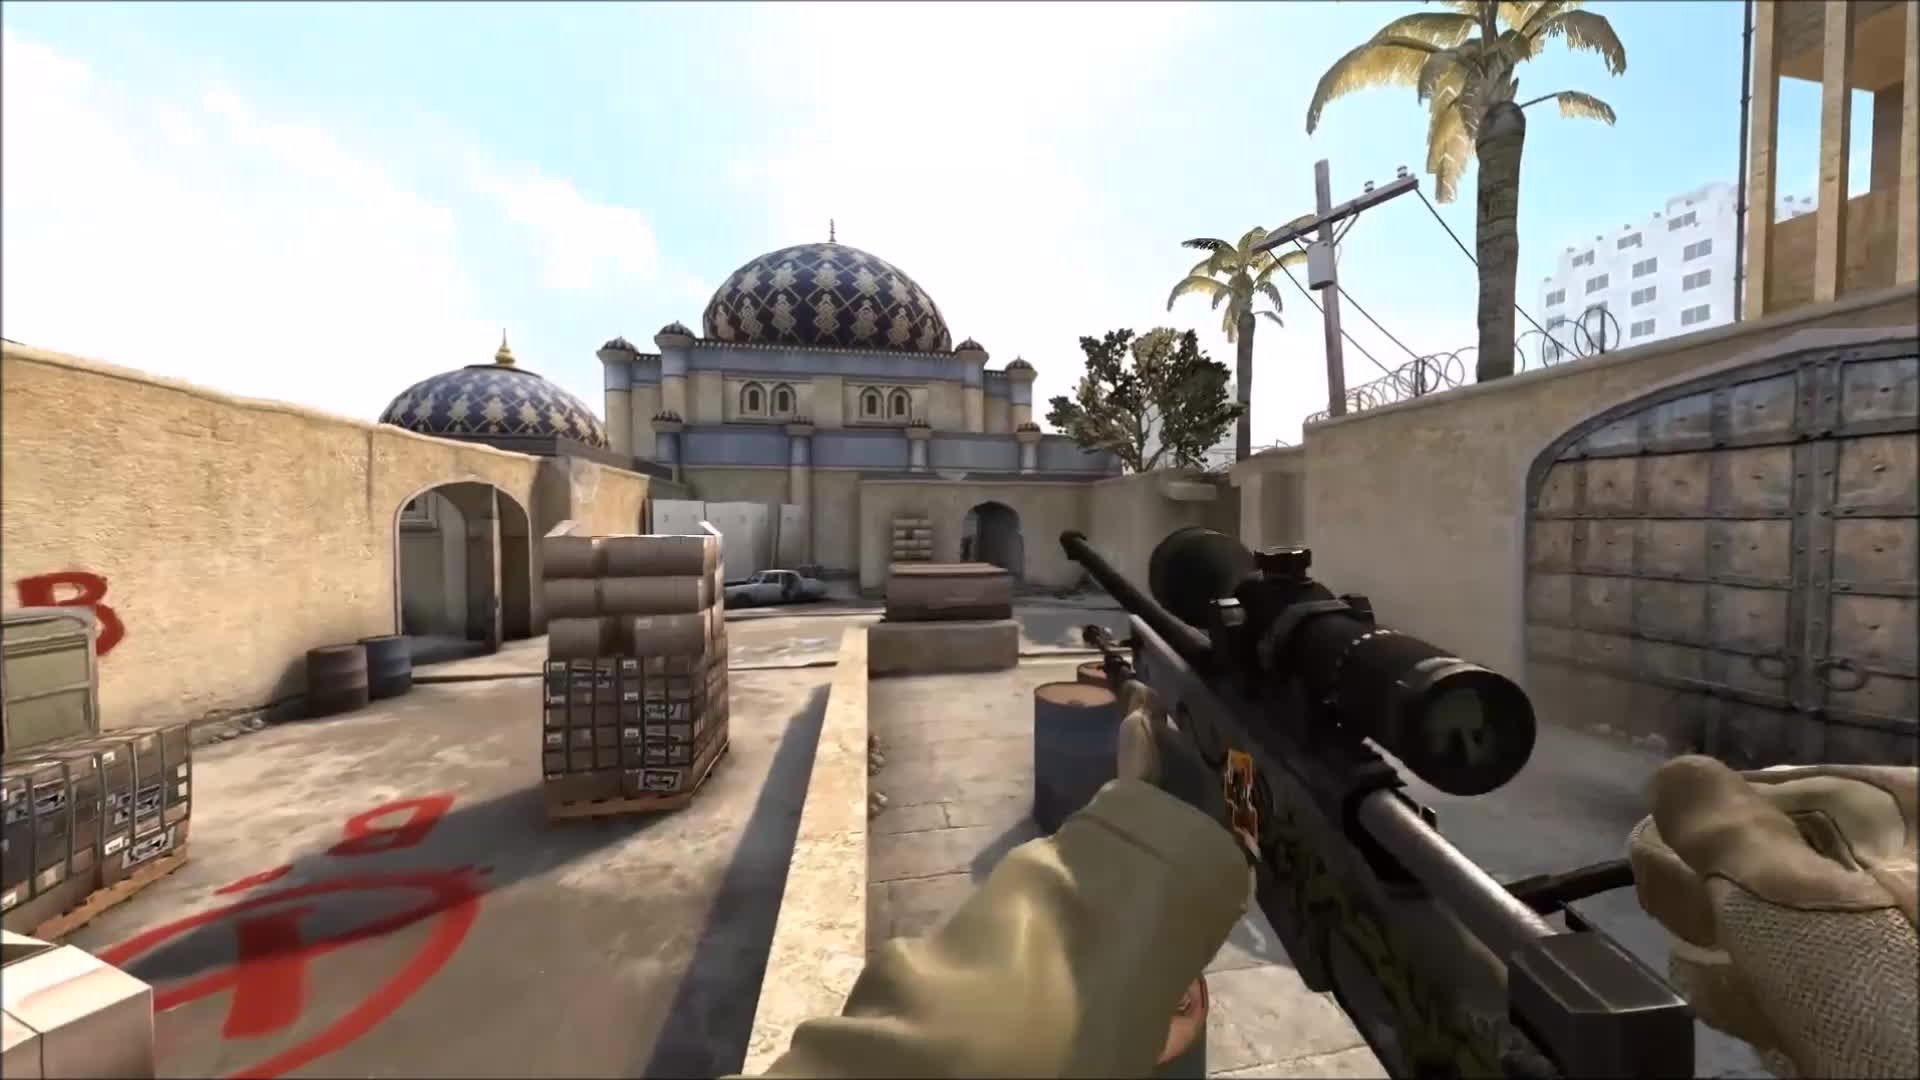 counterstrike, You Jumpscouters disgust me GIFs